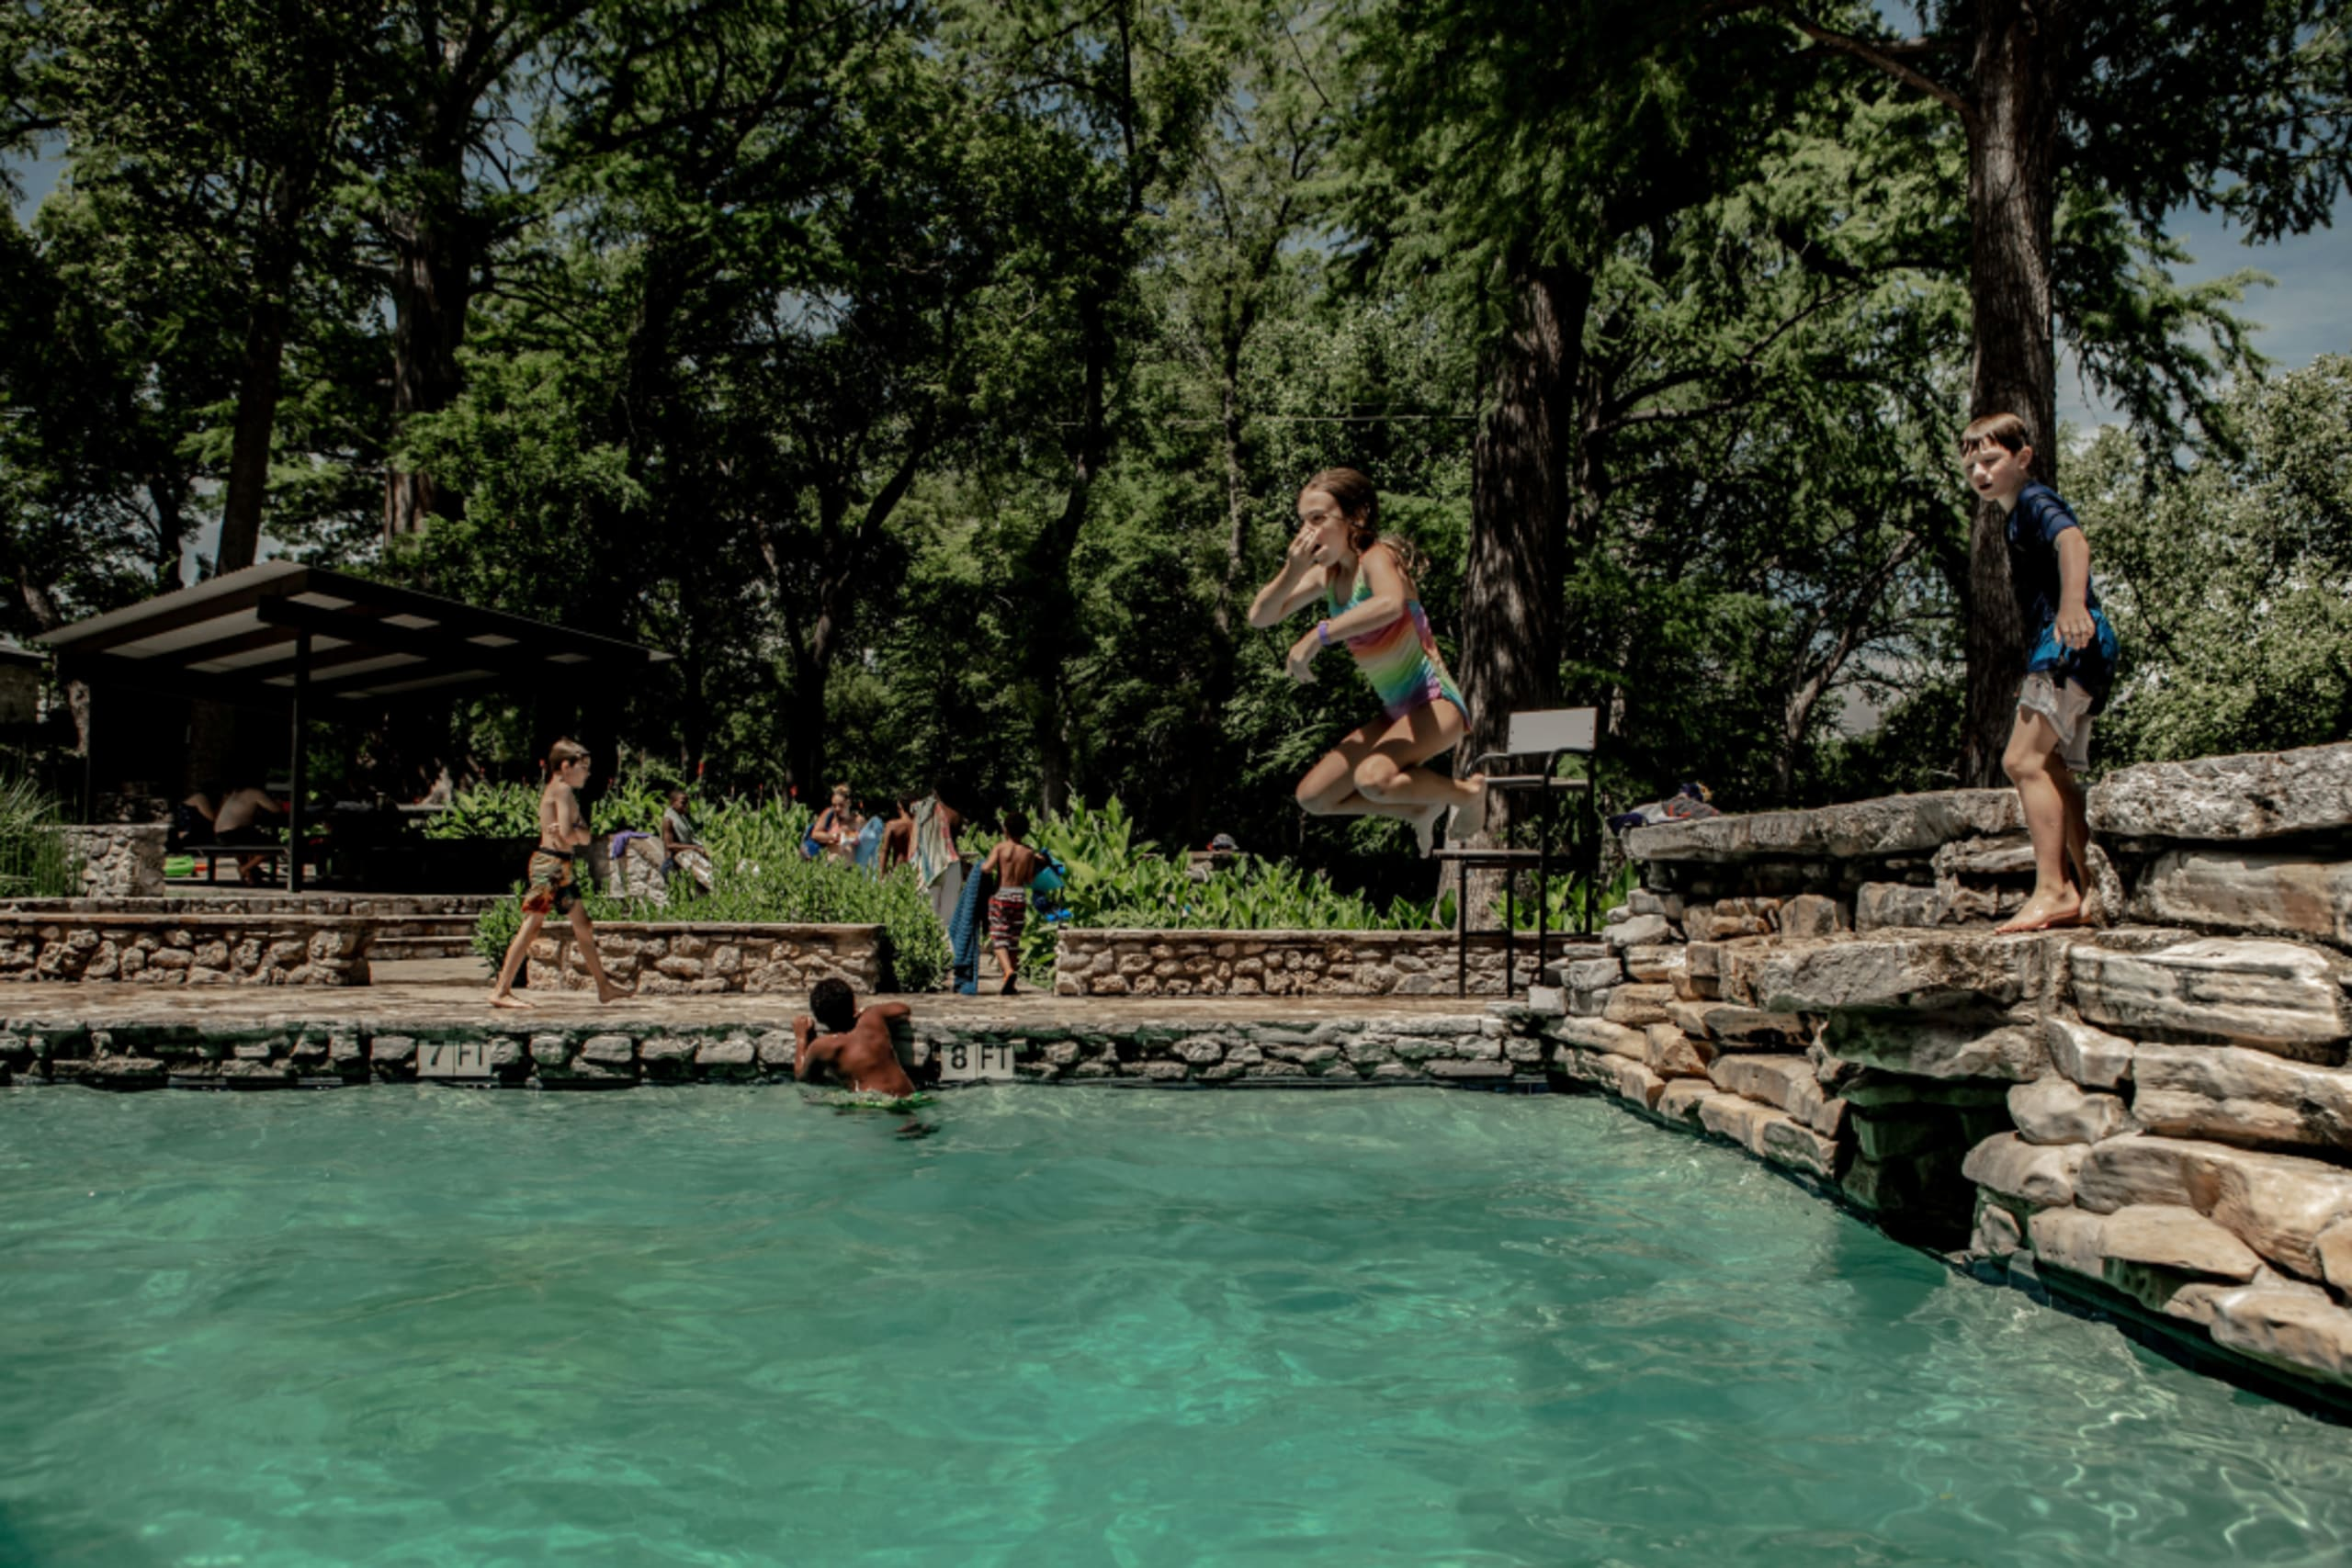 Dive in: 7 swimming holes and natural spots to splash into near Austin